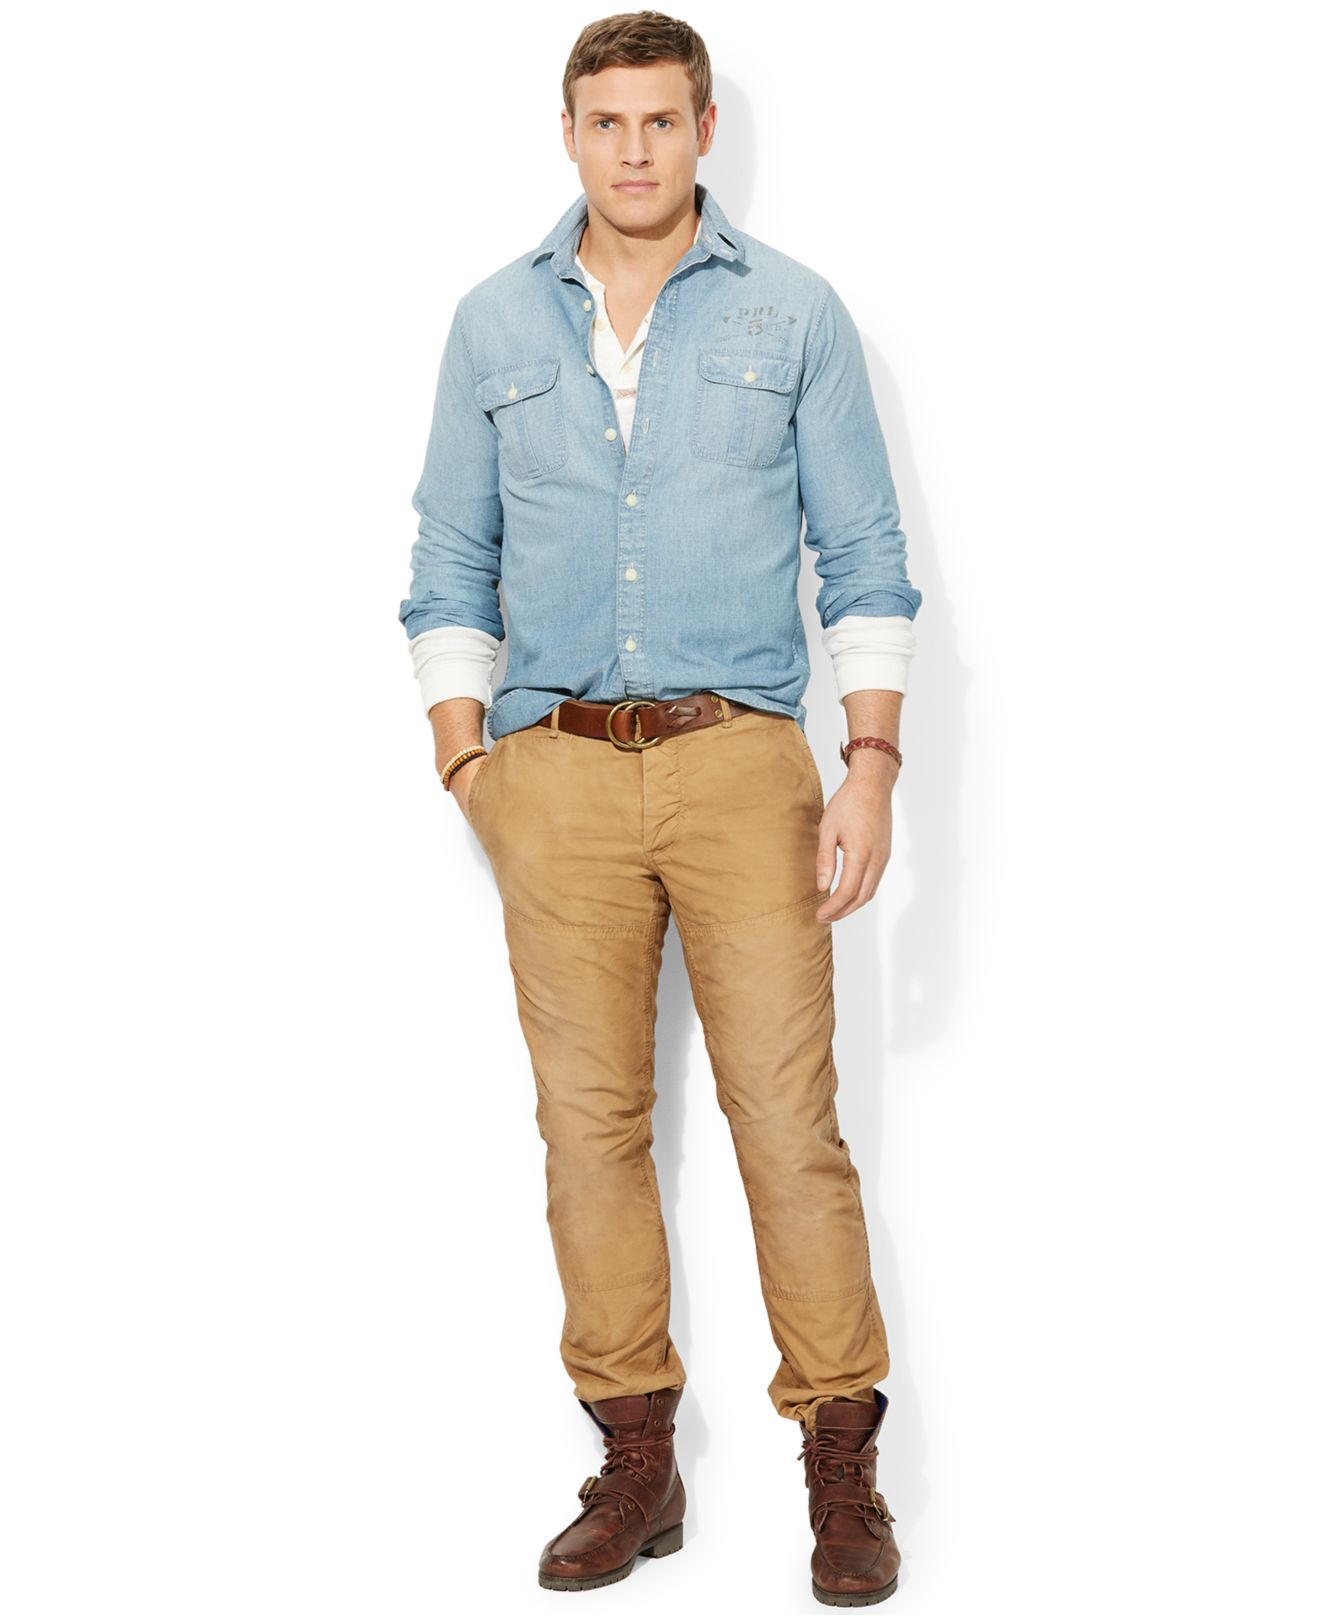 Polo ralph lauren big and tall long sleeve chambray shirt for Big and tall long sleeve shirts